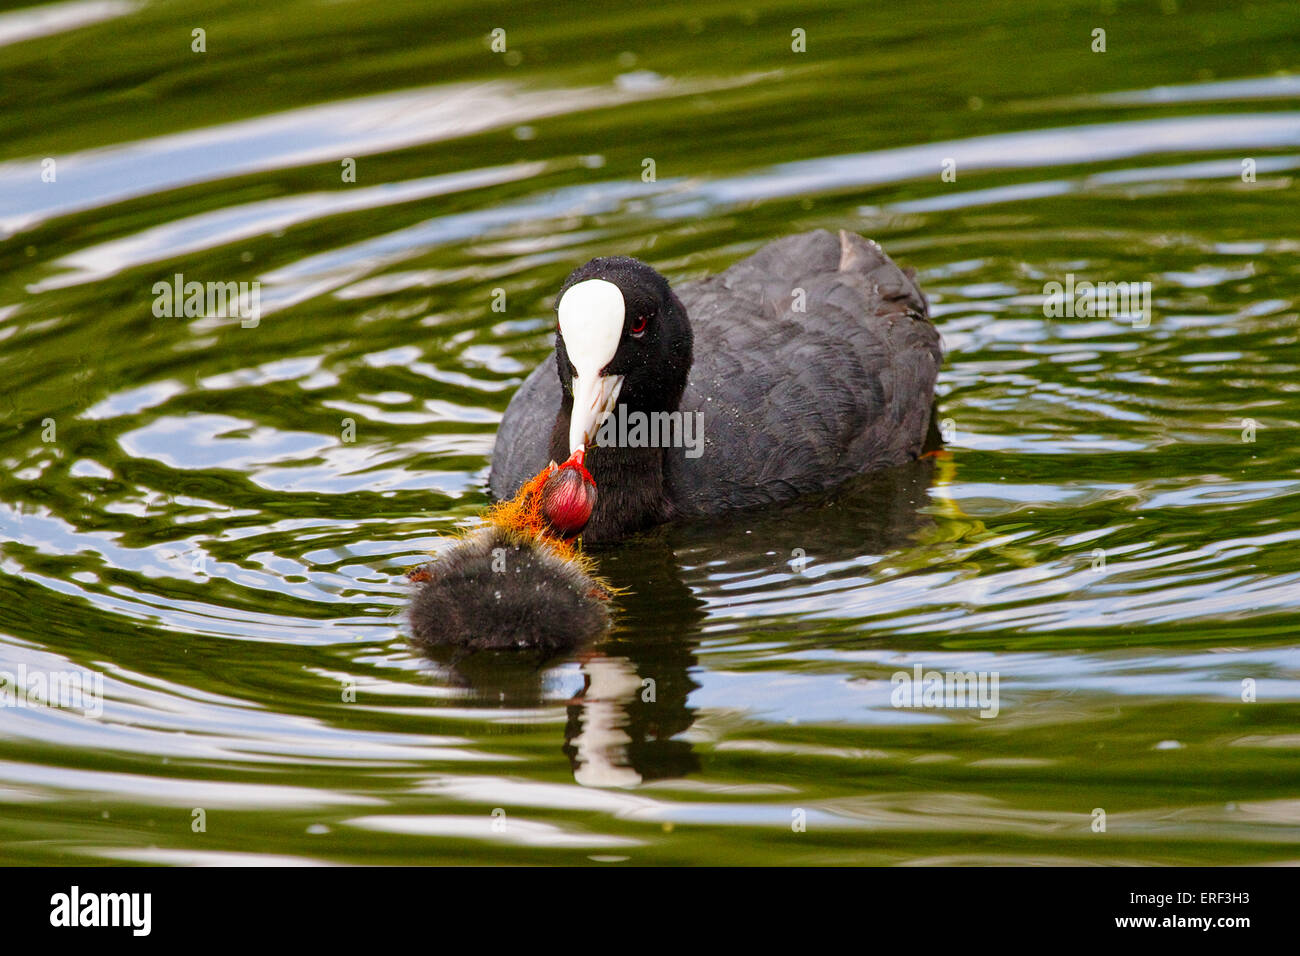 Coot (Fulica atra) with chick - Stock Image